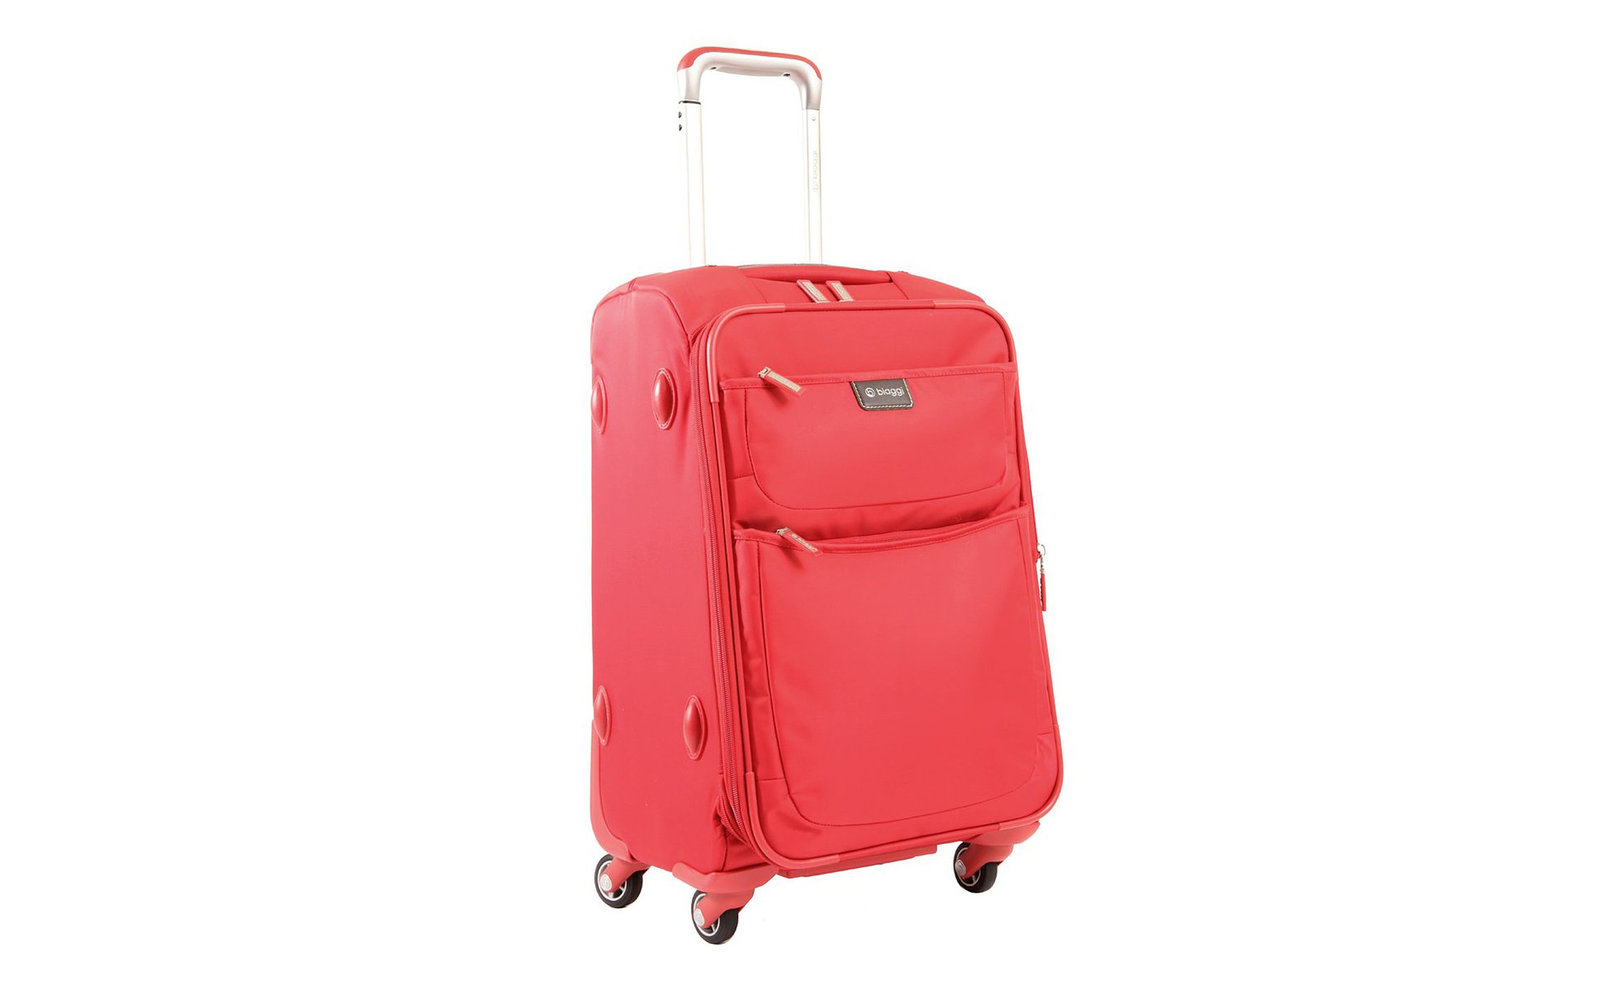 Best Carry-On Luggage for Business Travel | Travel   Leisure